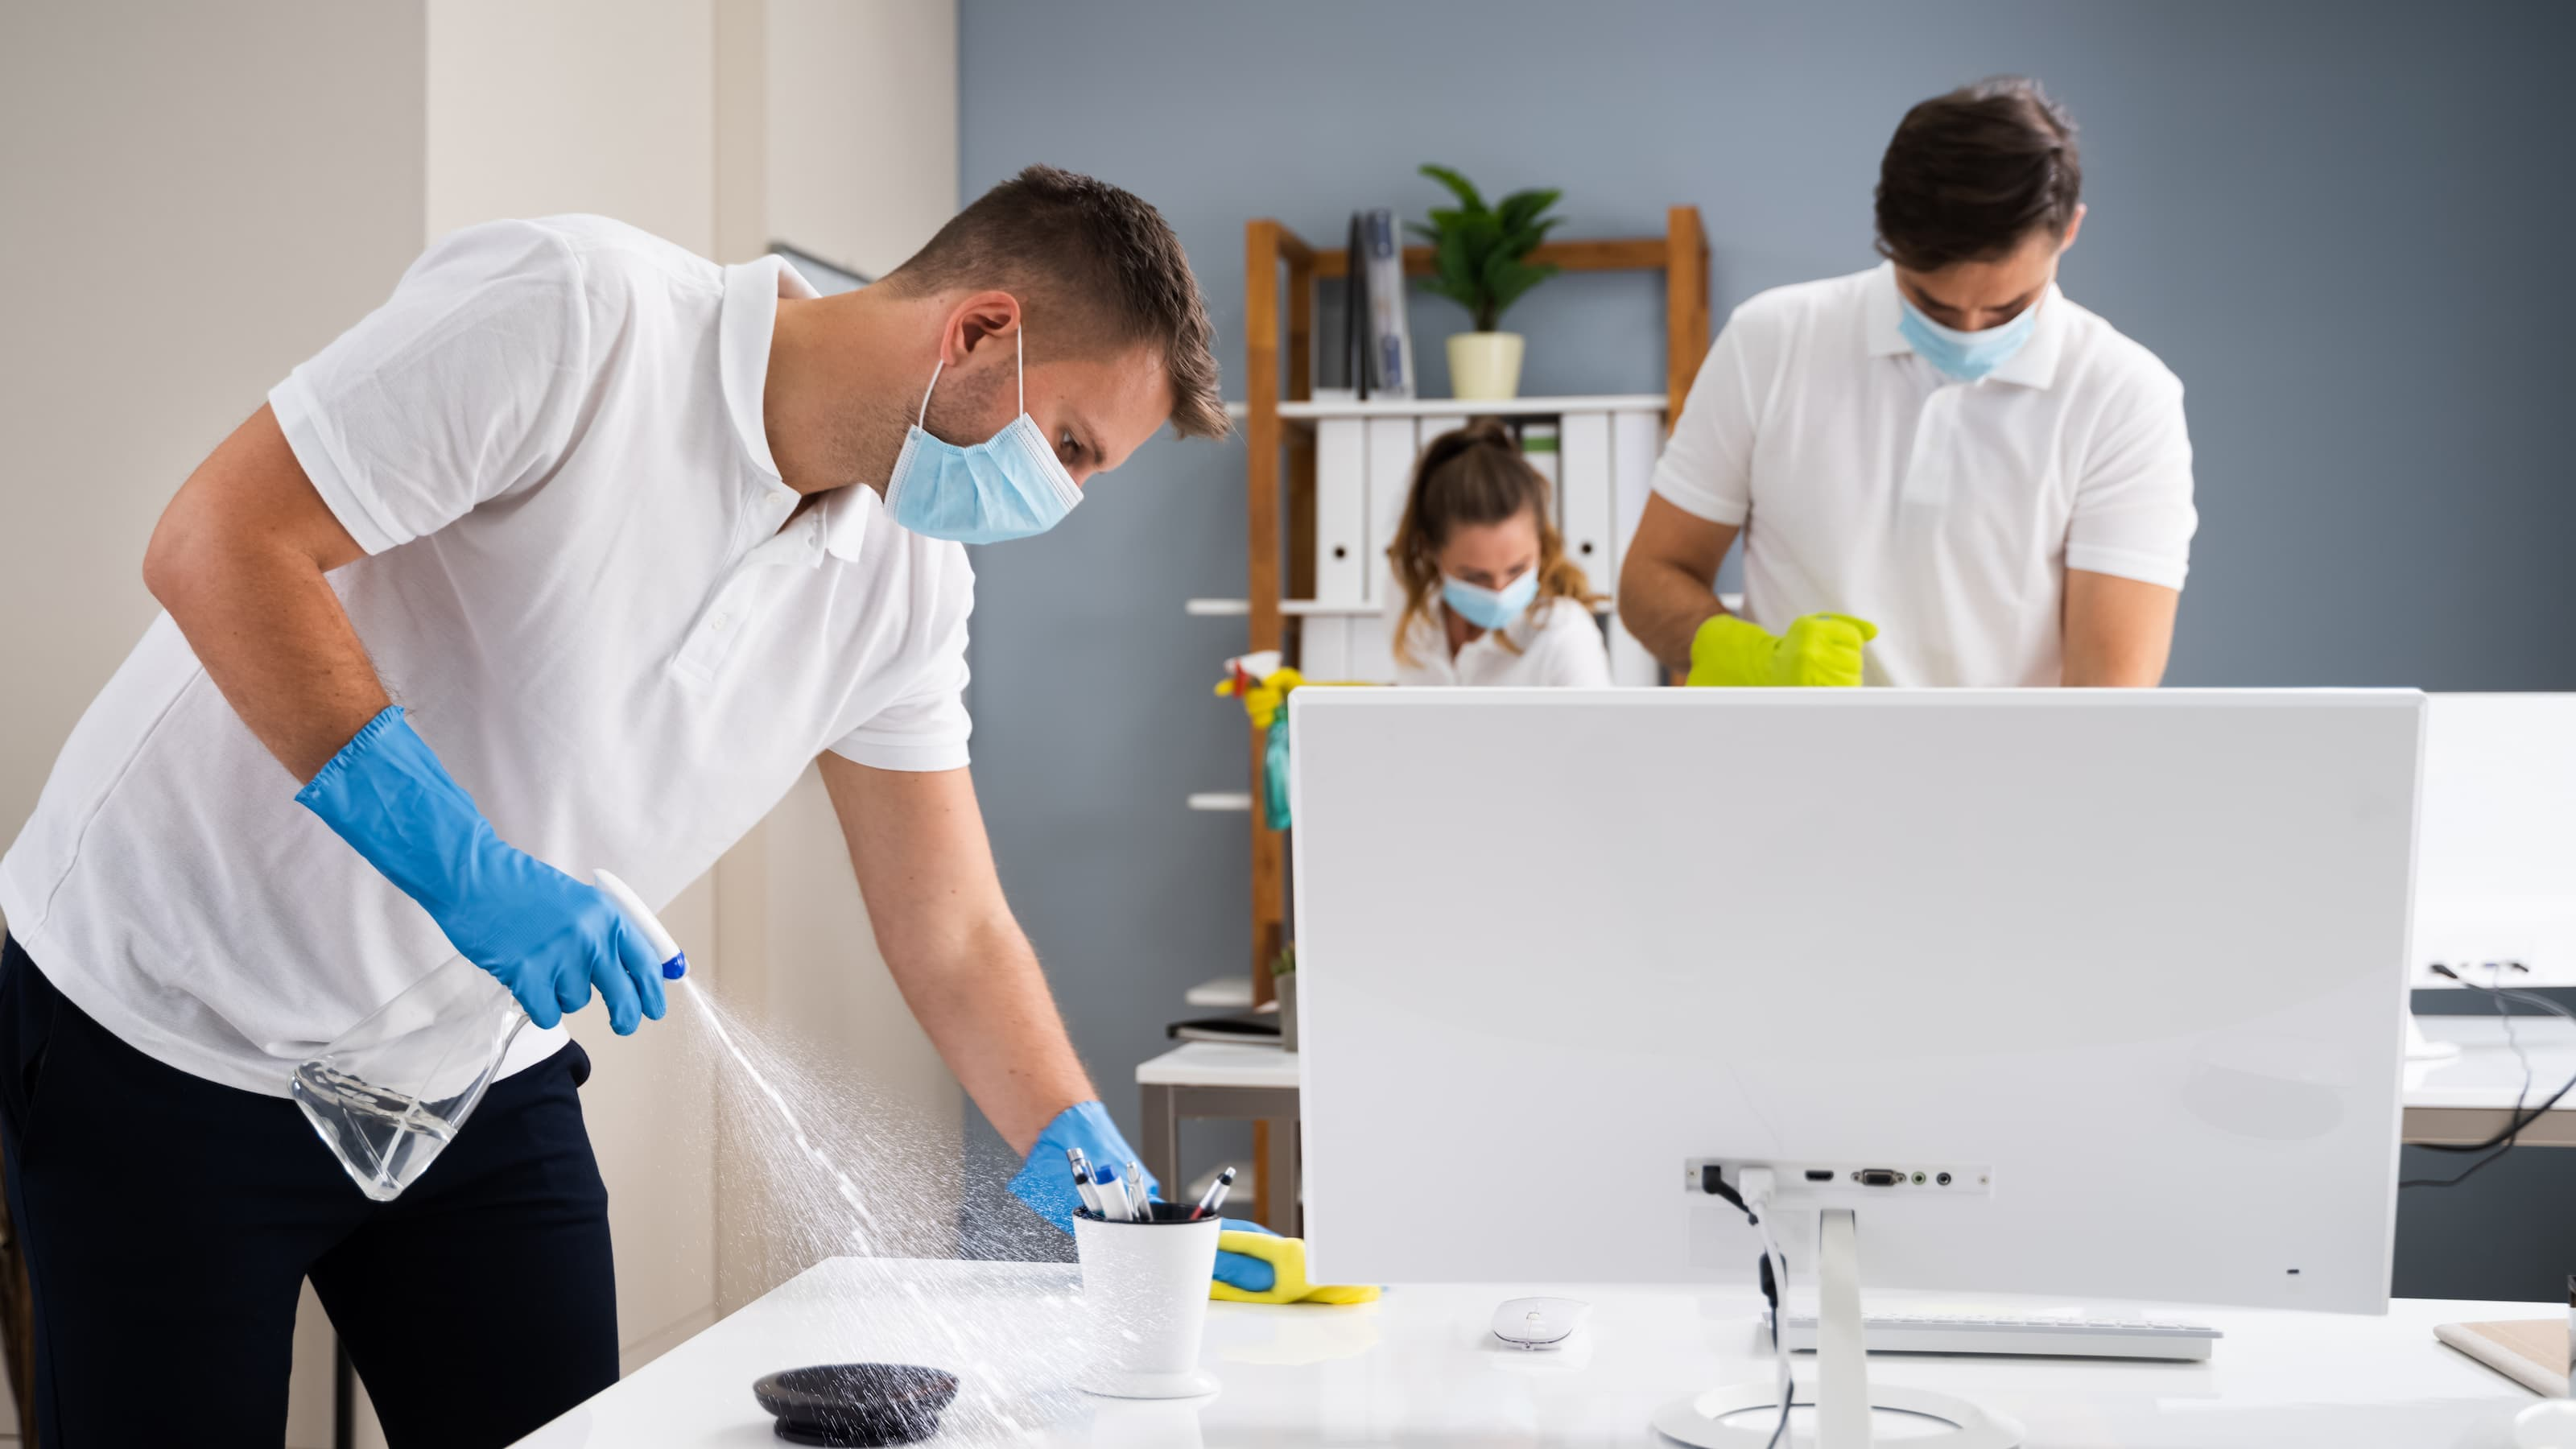 Gleem knows how to take care of office cleaning in a professional way. They are the best company for all your needs!